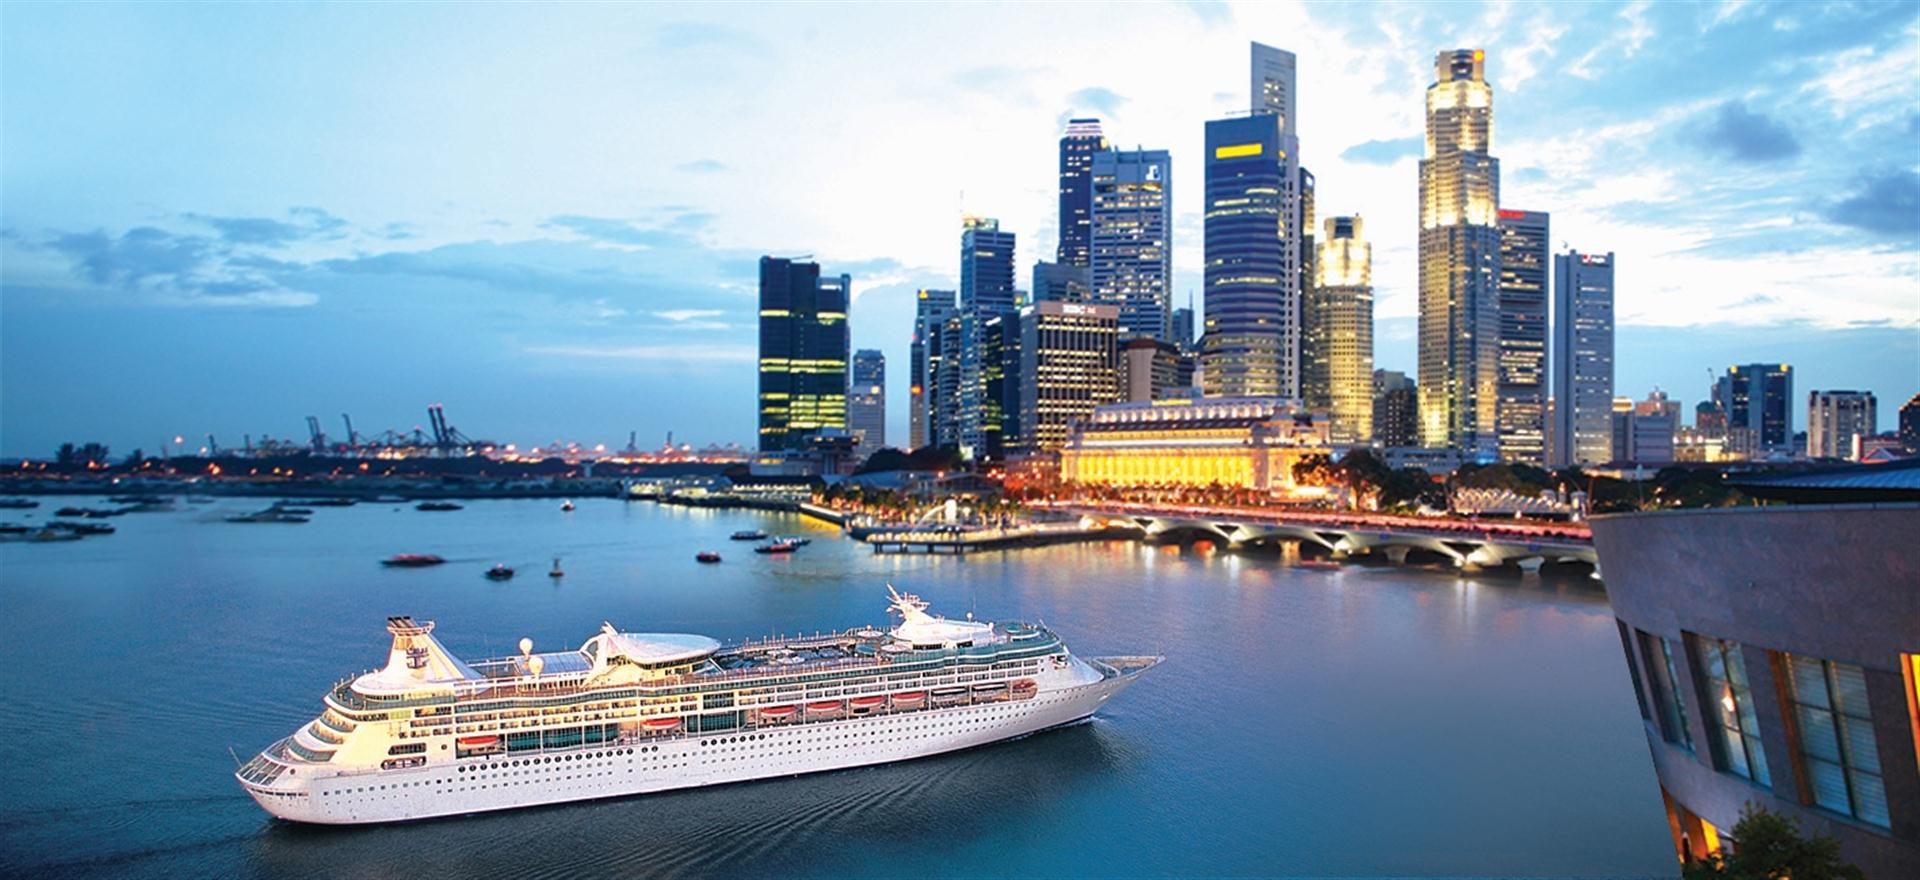 Cruises from Asia: Everything you need to know